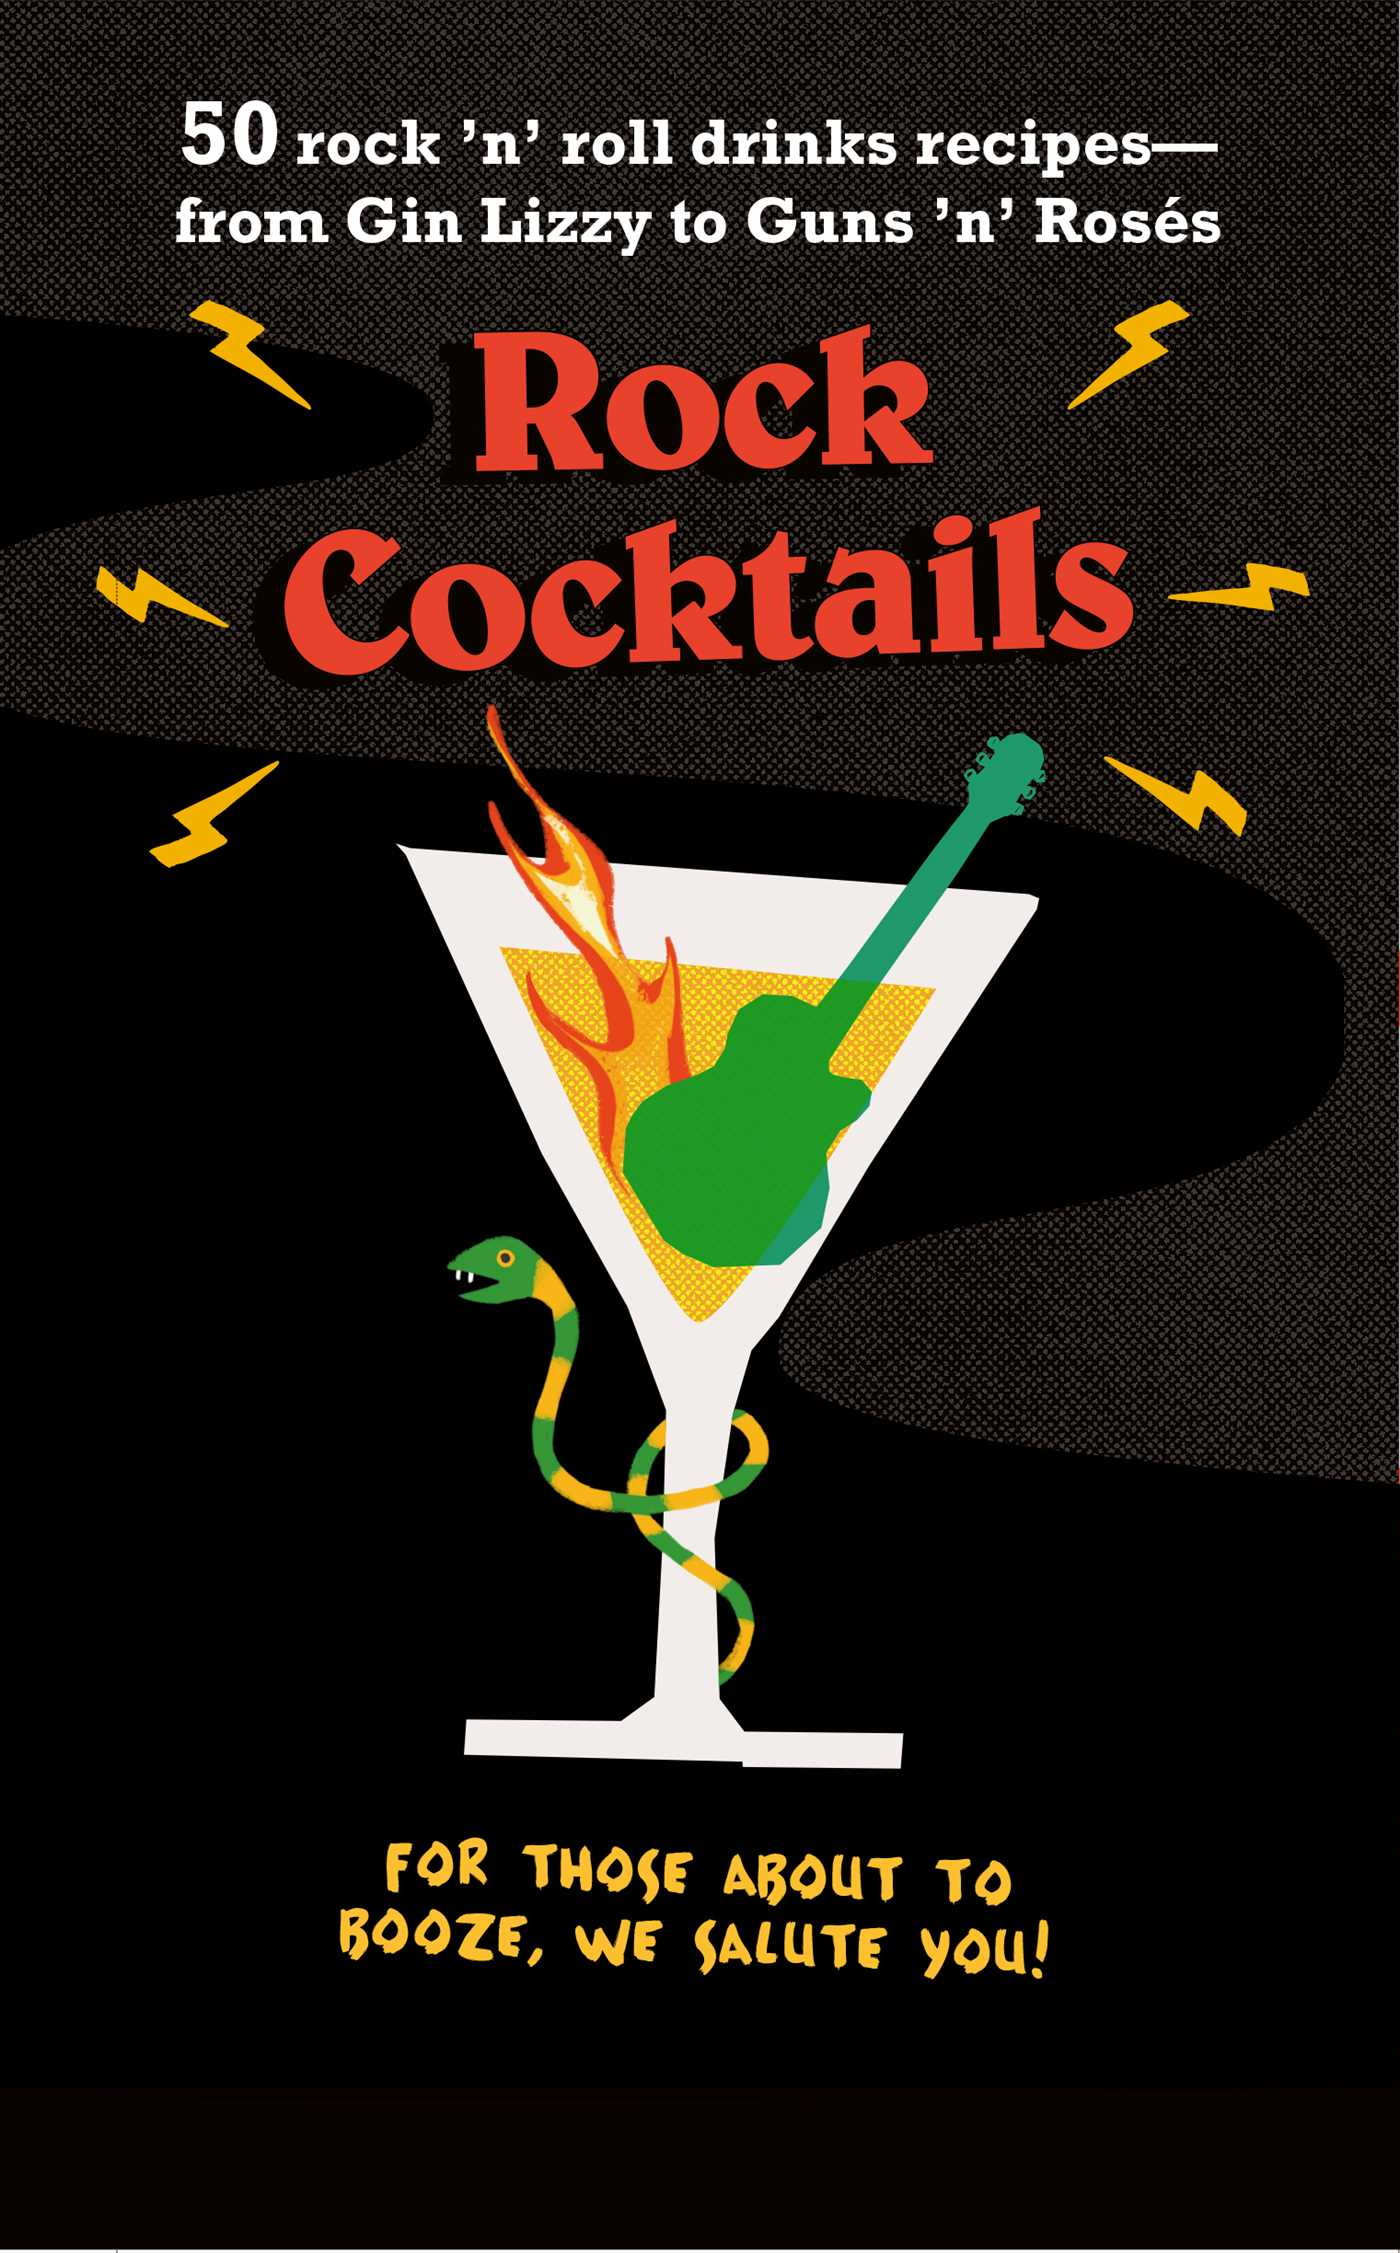 Image of  Rock Cocktails: 50 rock 'n' roll drinks recipes—from Gin Lizzy to Guns 'n' Rosés